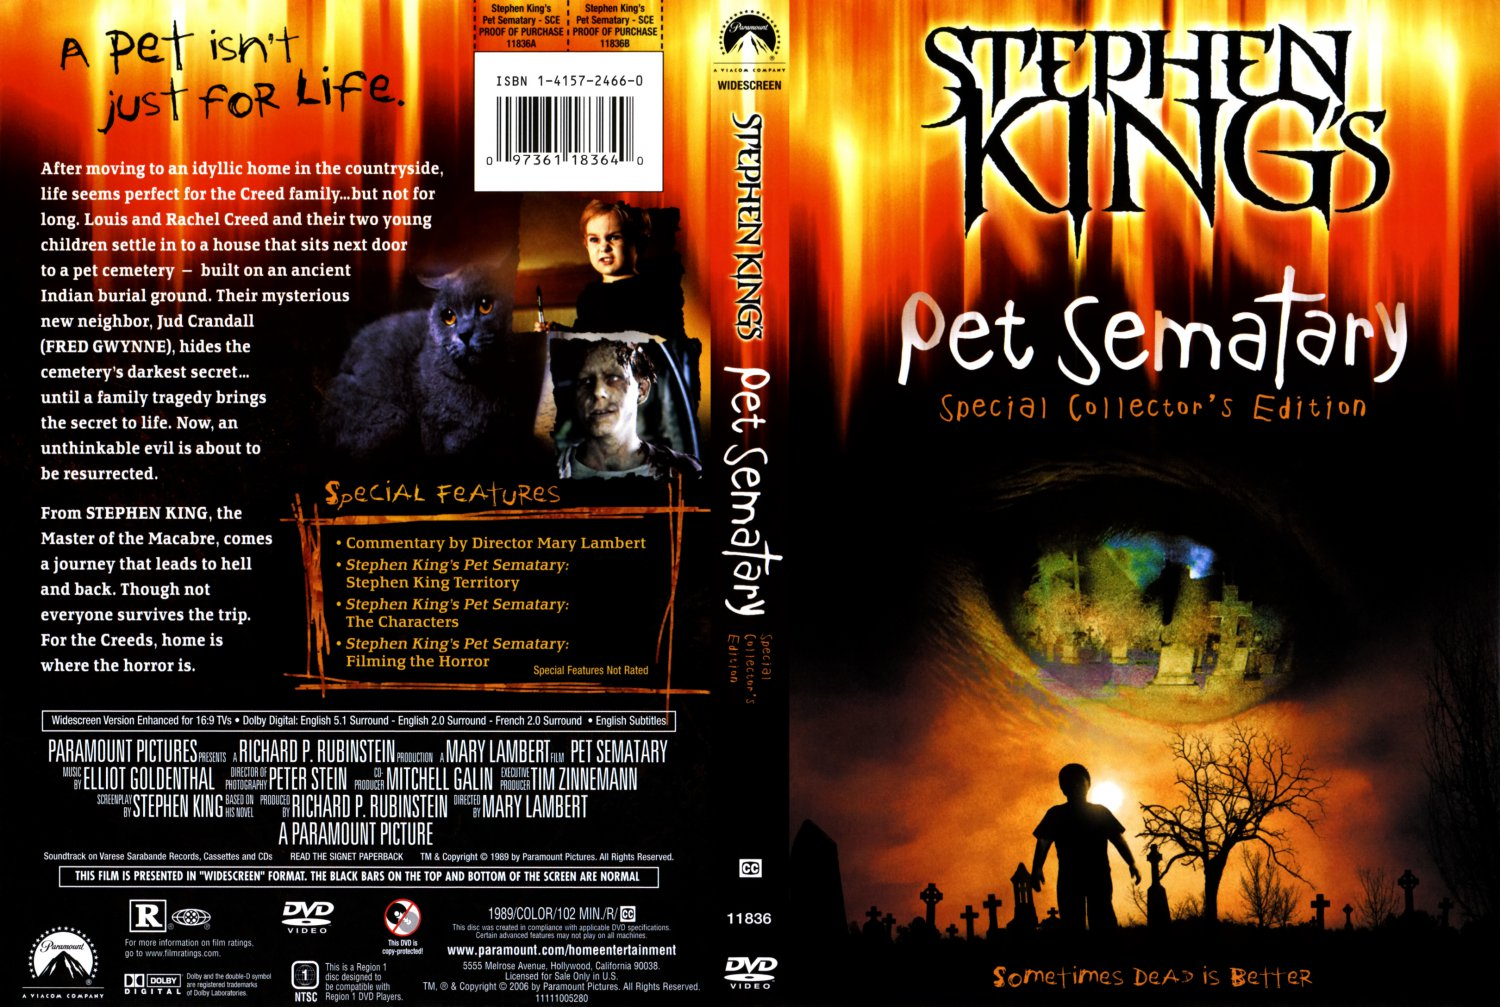 pet sematary special collectors edition dvd